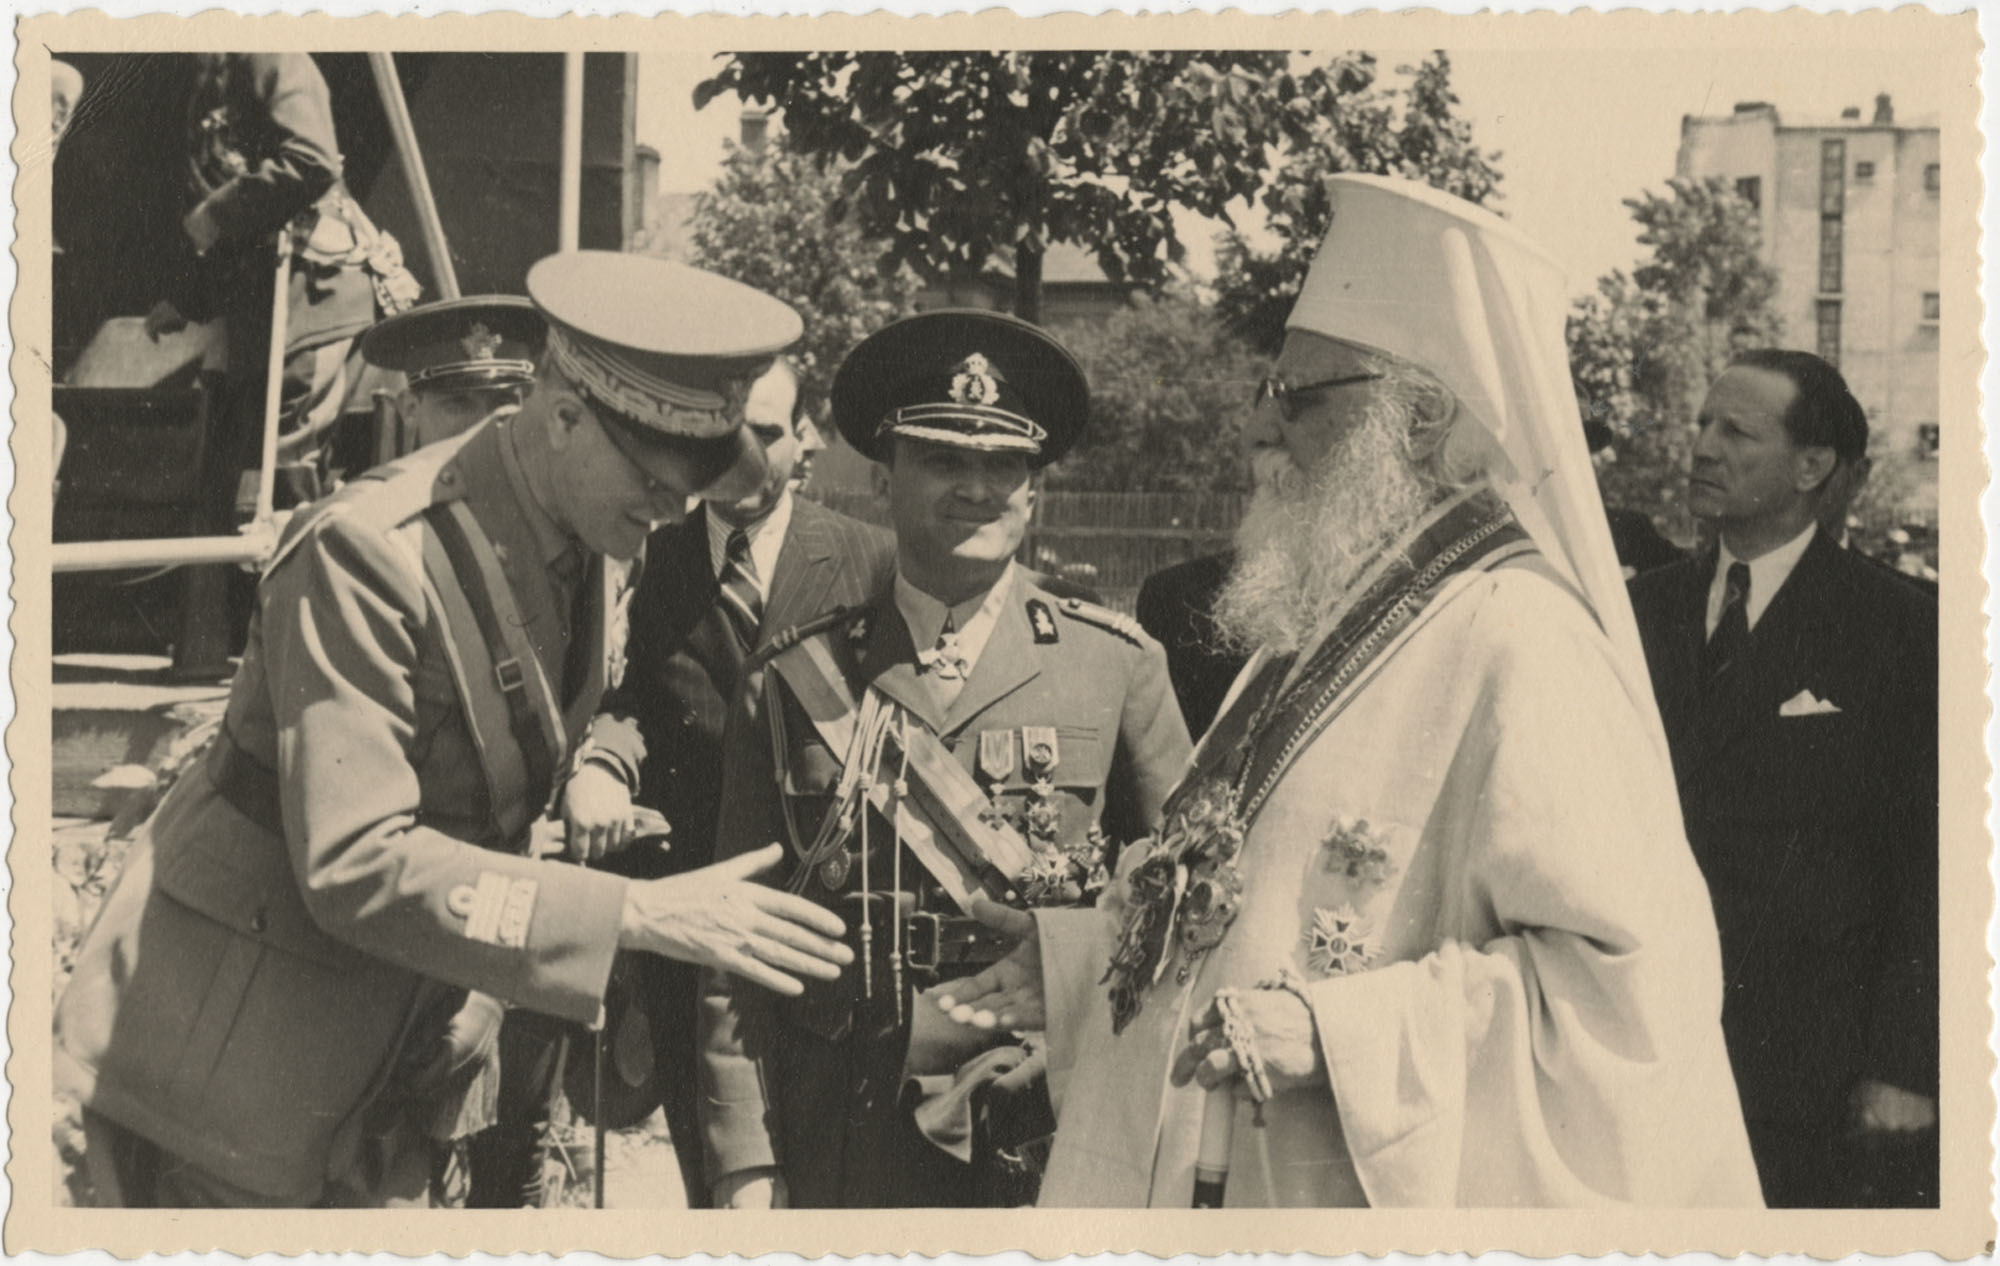 Military officials greeting each other, Photograph 1